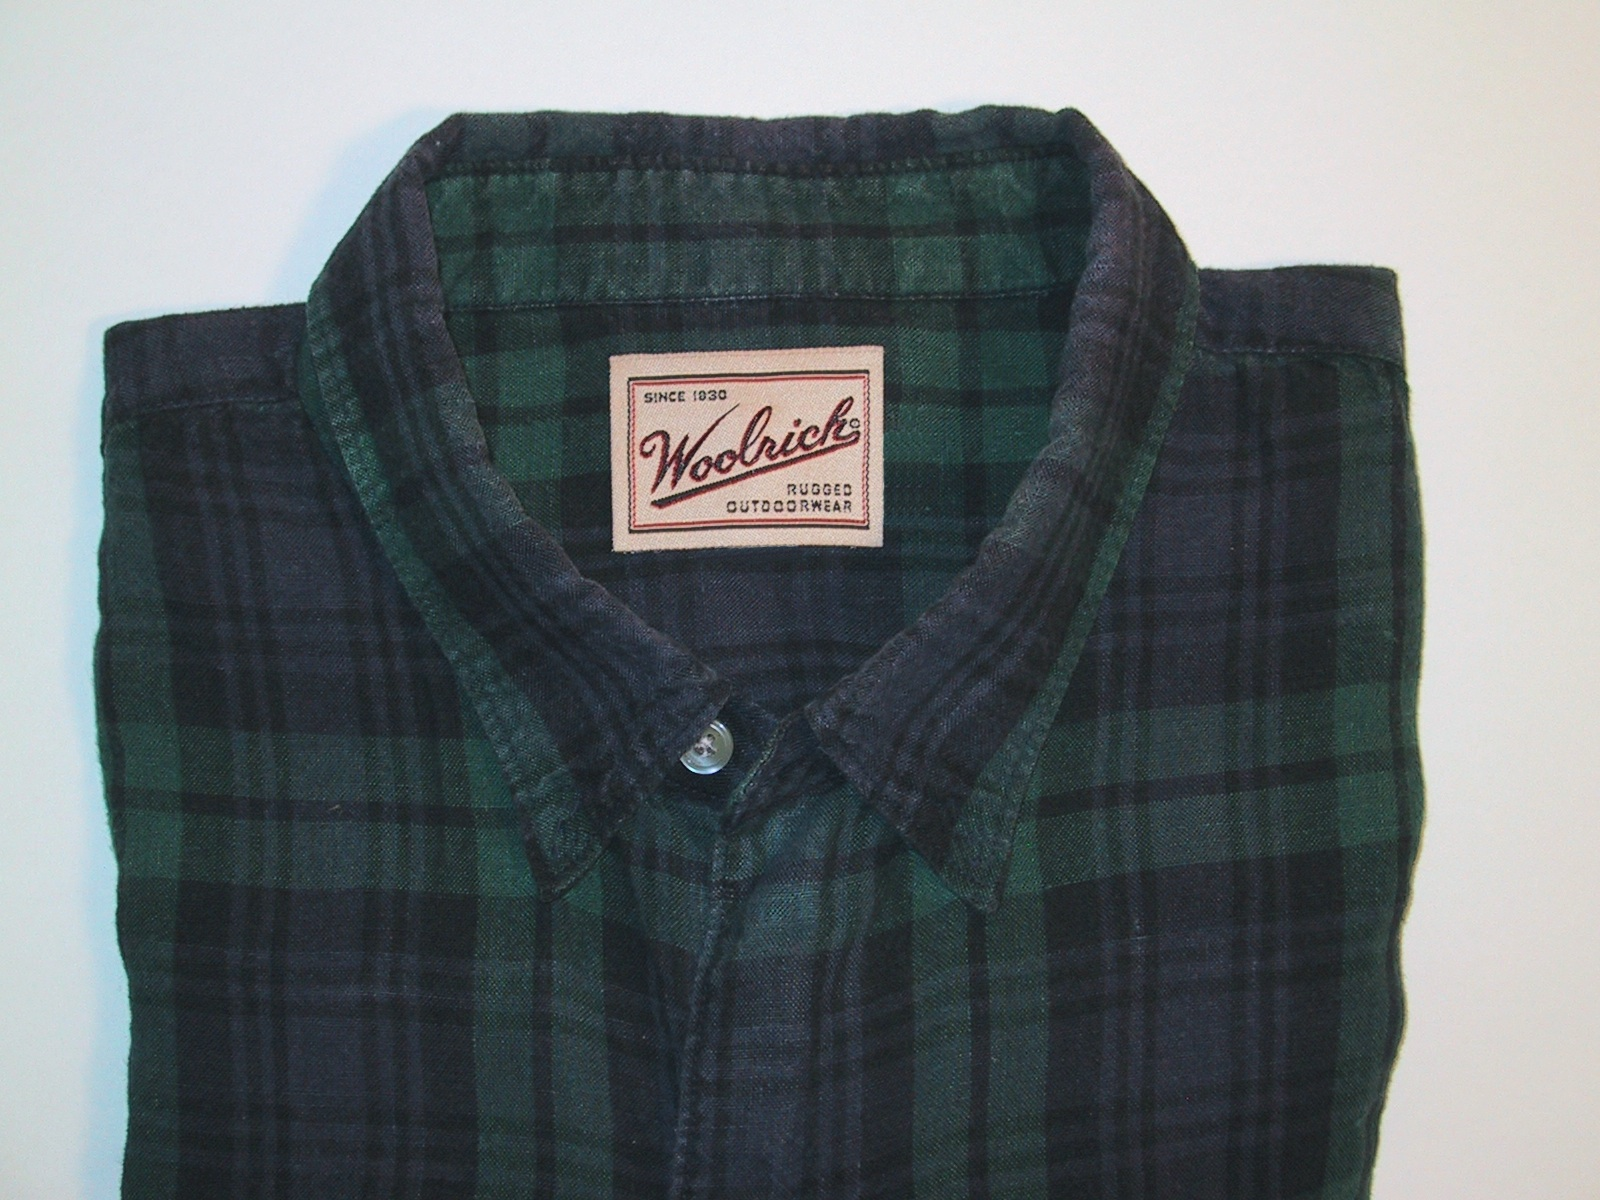 Woolrich Label